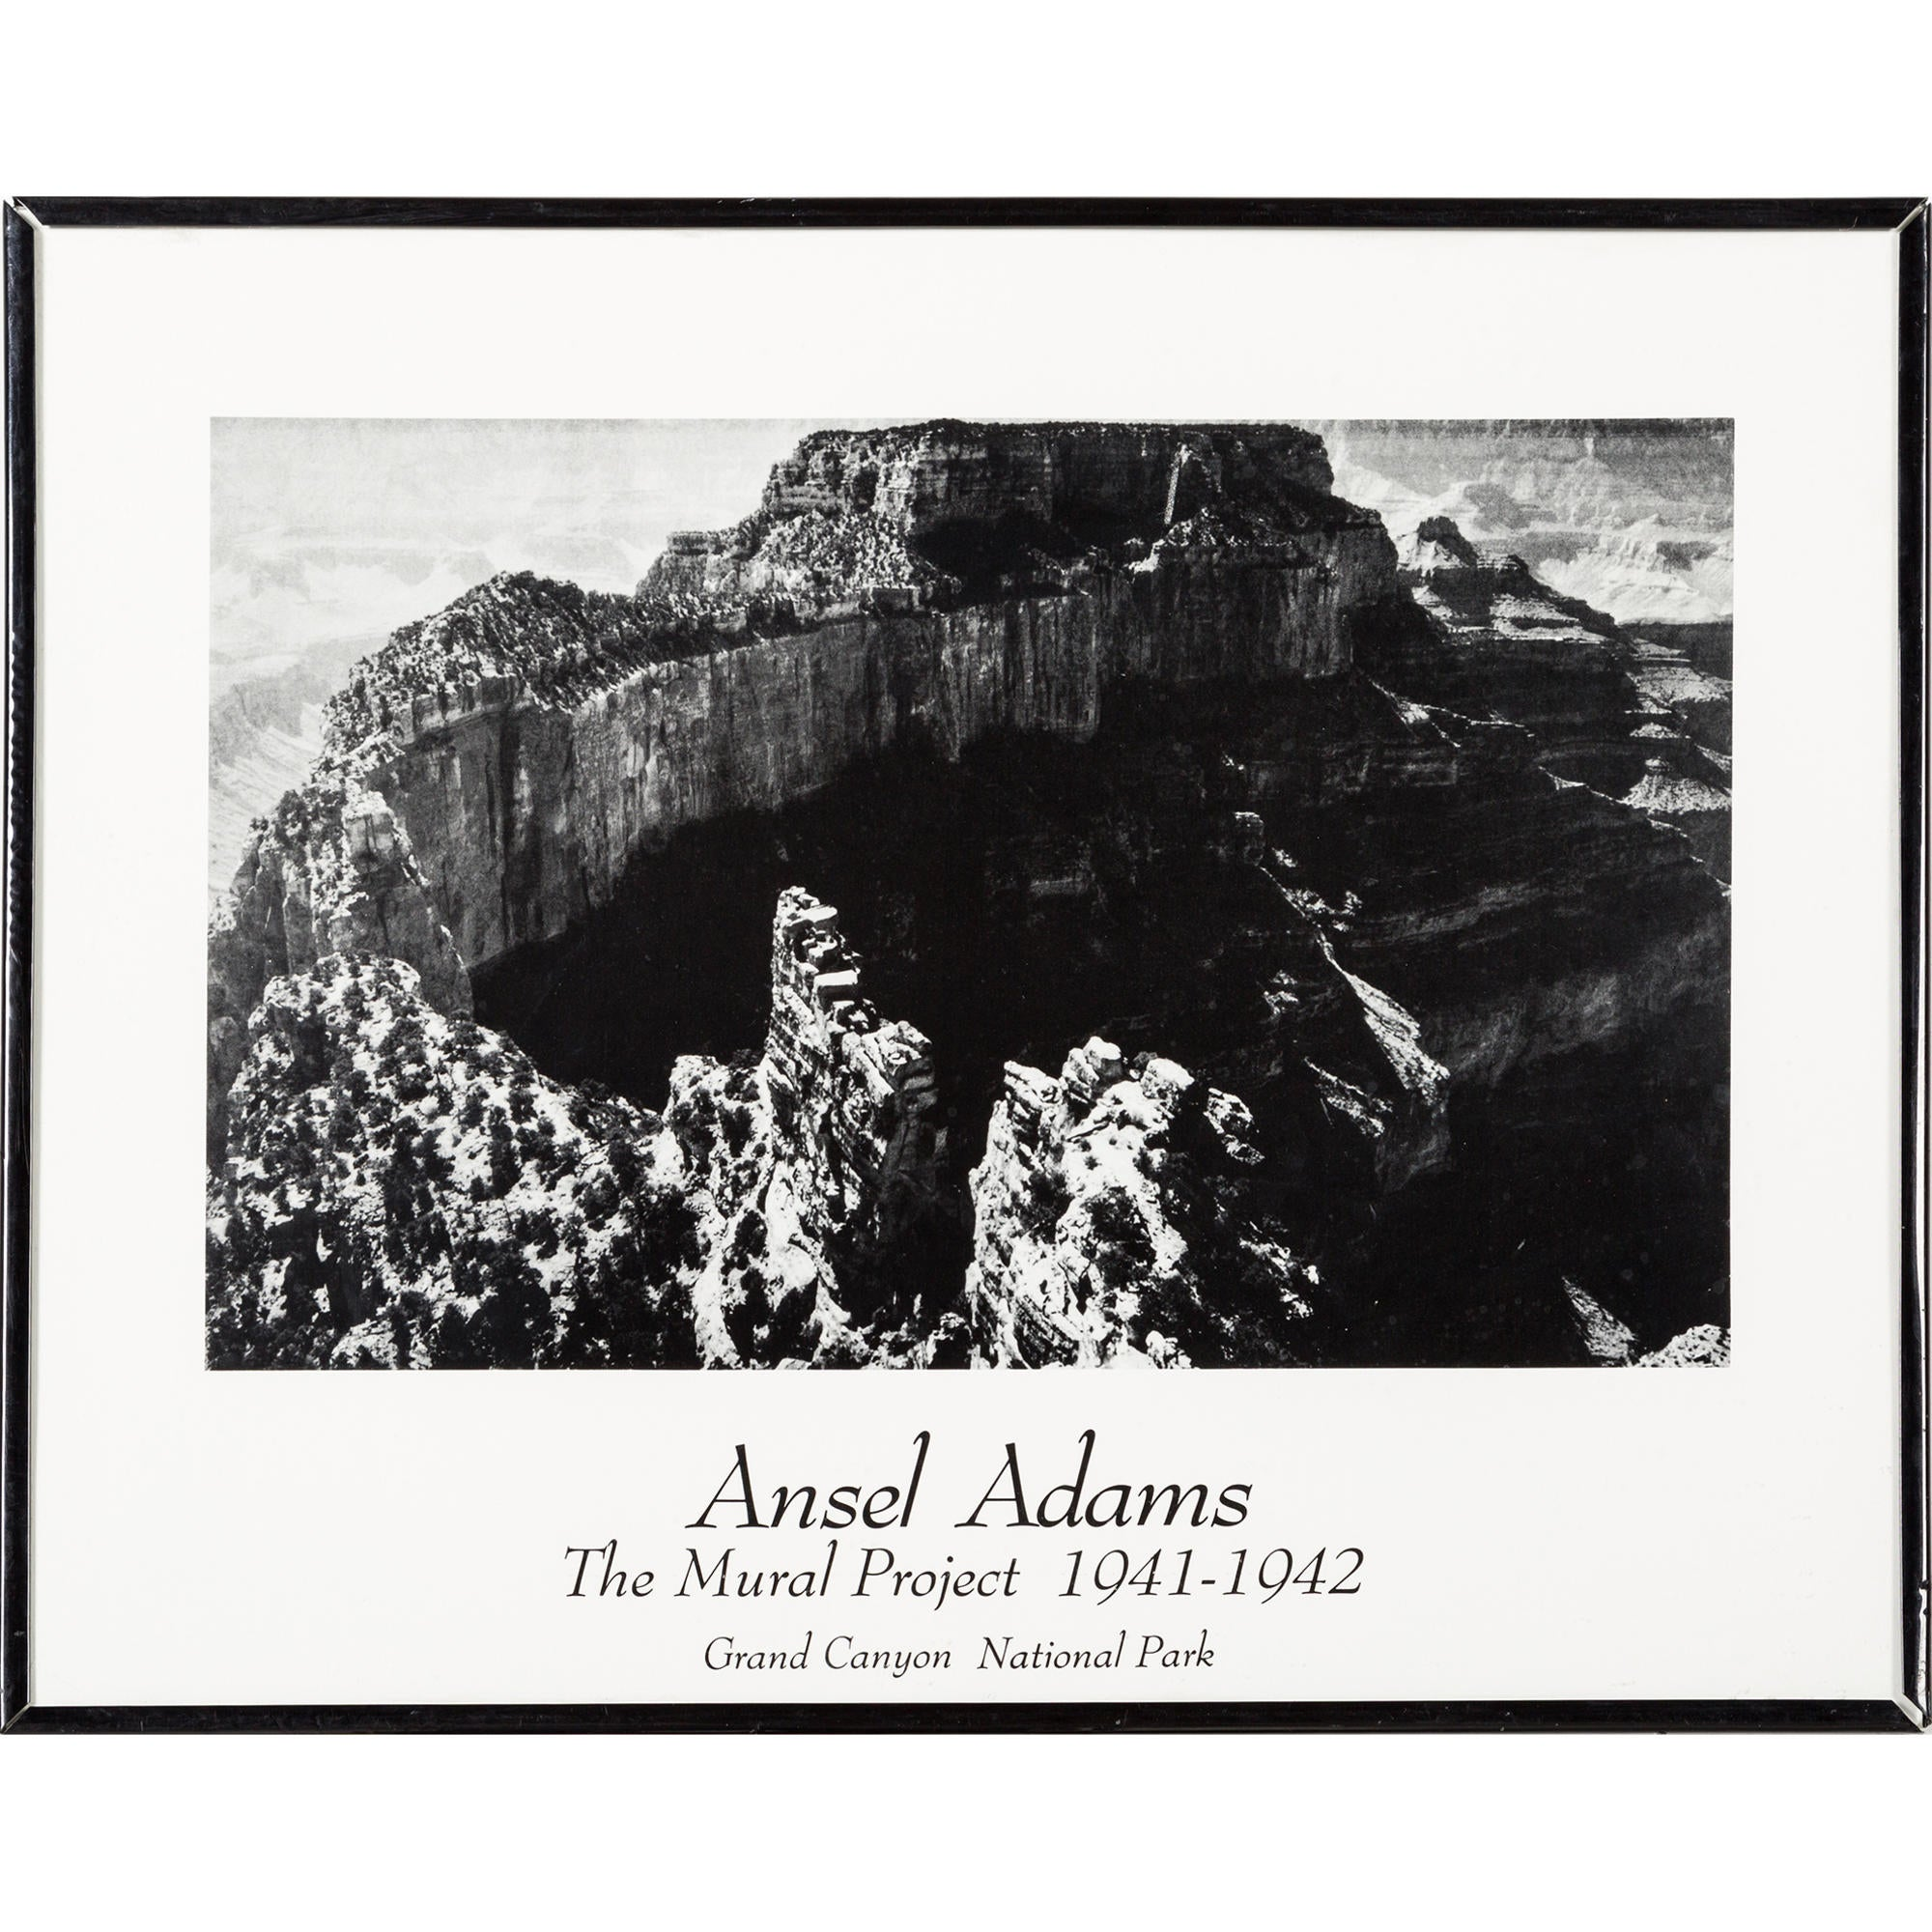 ansel adams the mural project Modern replicas are superb digital reproductions of ansel adams' original photographs, available in a variety of sizes to fit your specific needs these are the highest quality large format reproductions that can possibly be produced, and they look great in any setting.